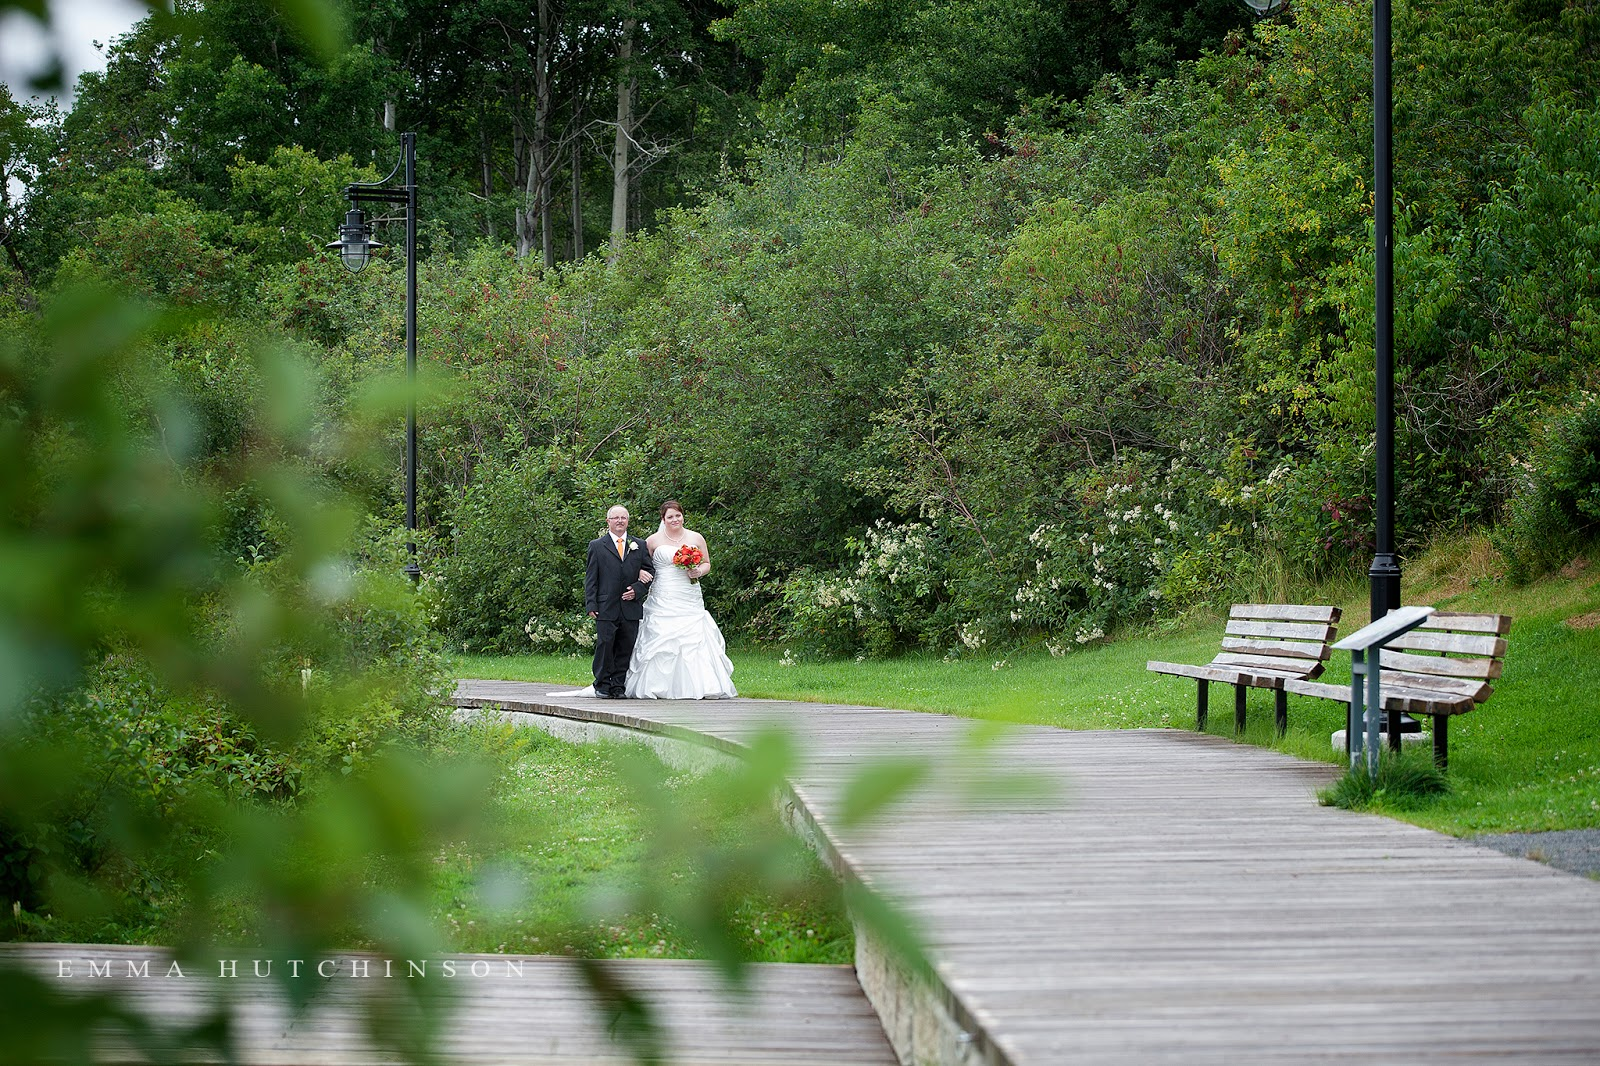 emma hutchinson photography photographs weddings at Gorge Park in Grand Falls-Windsor